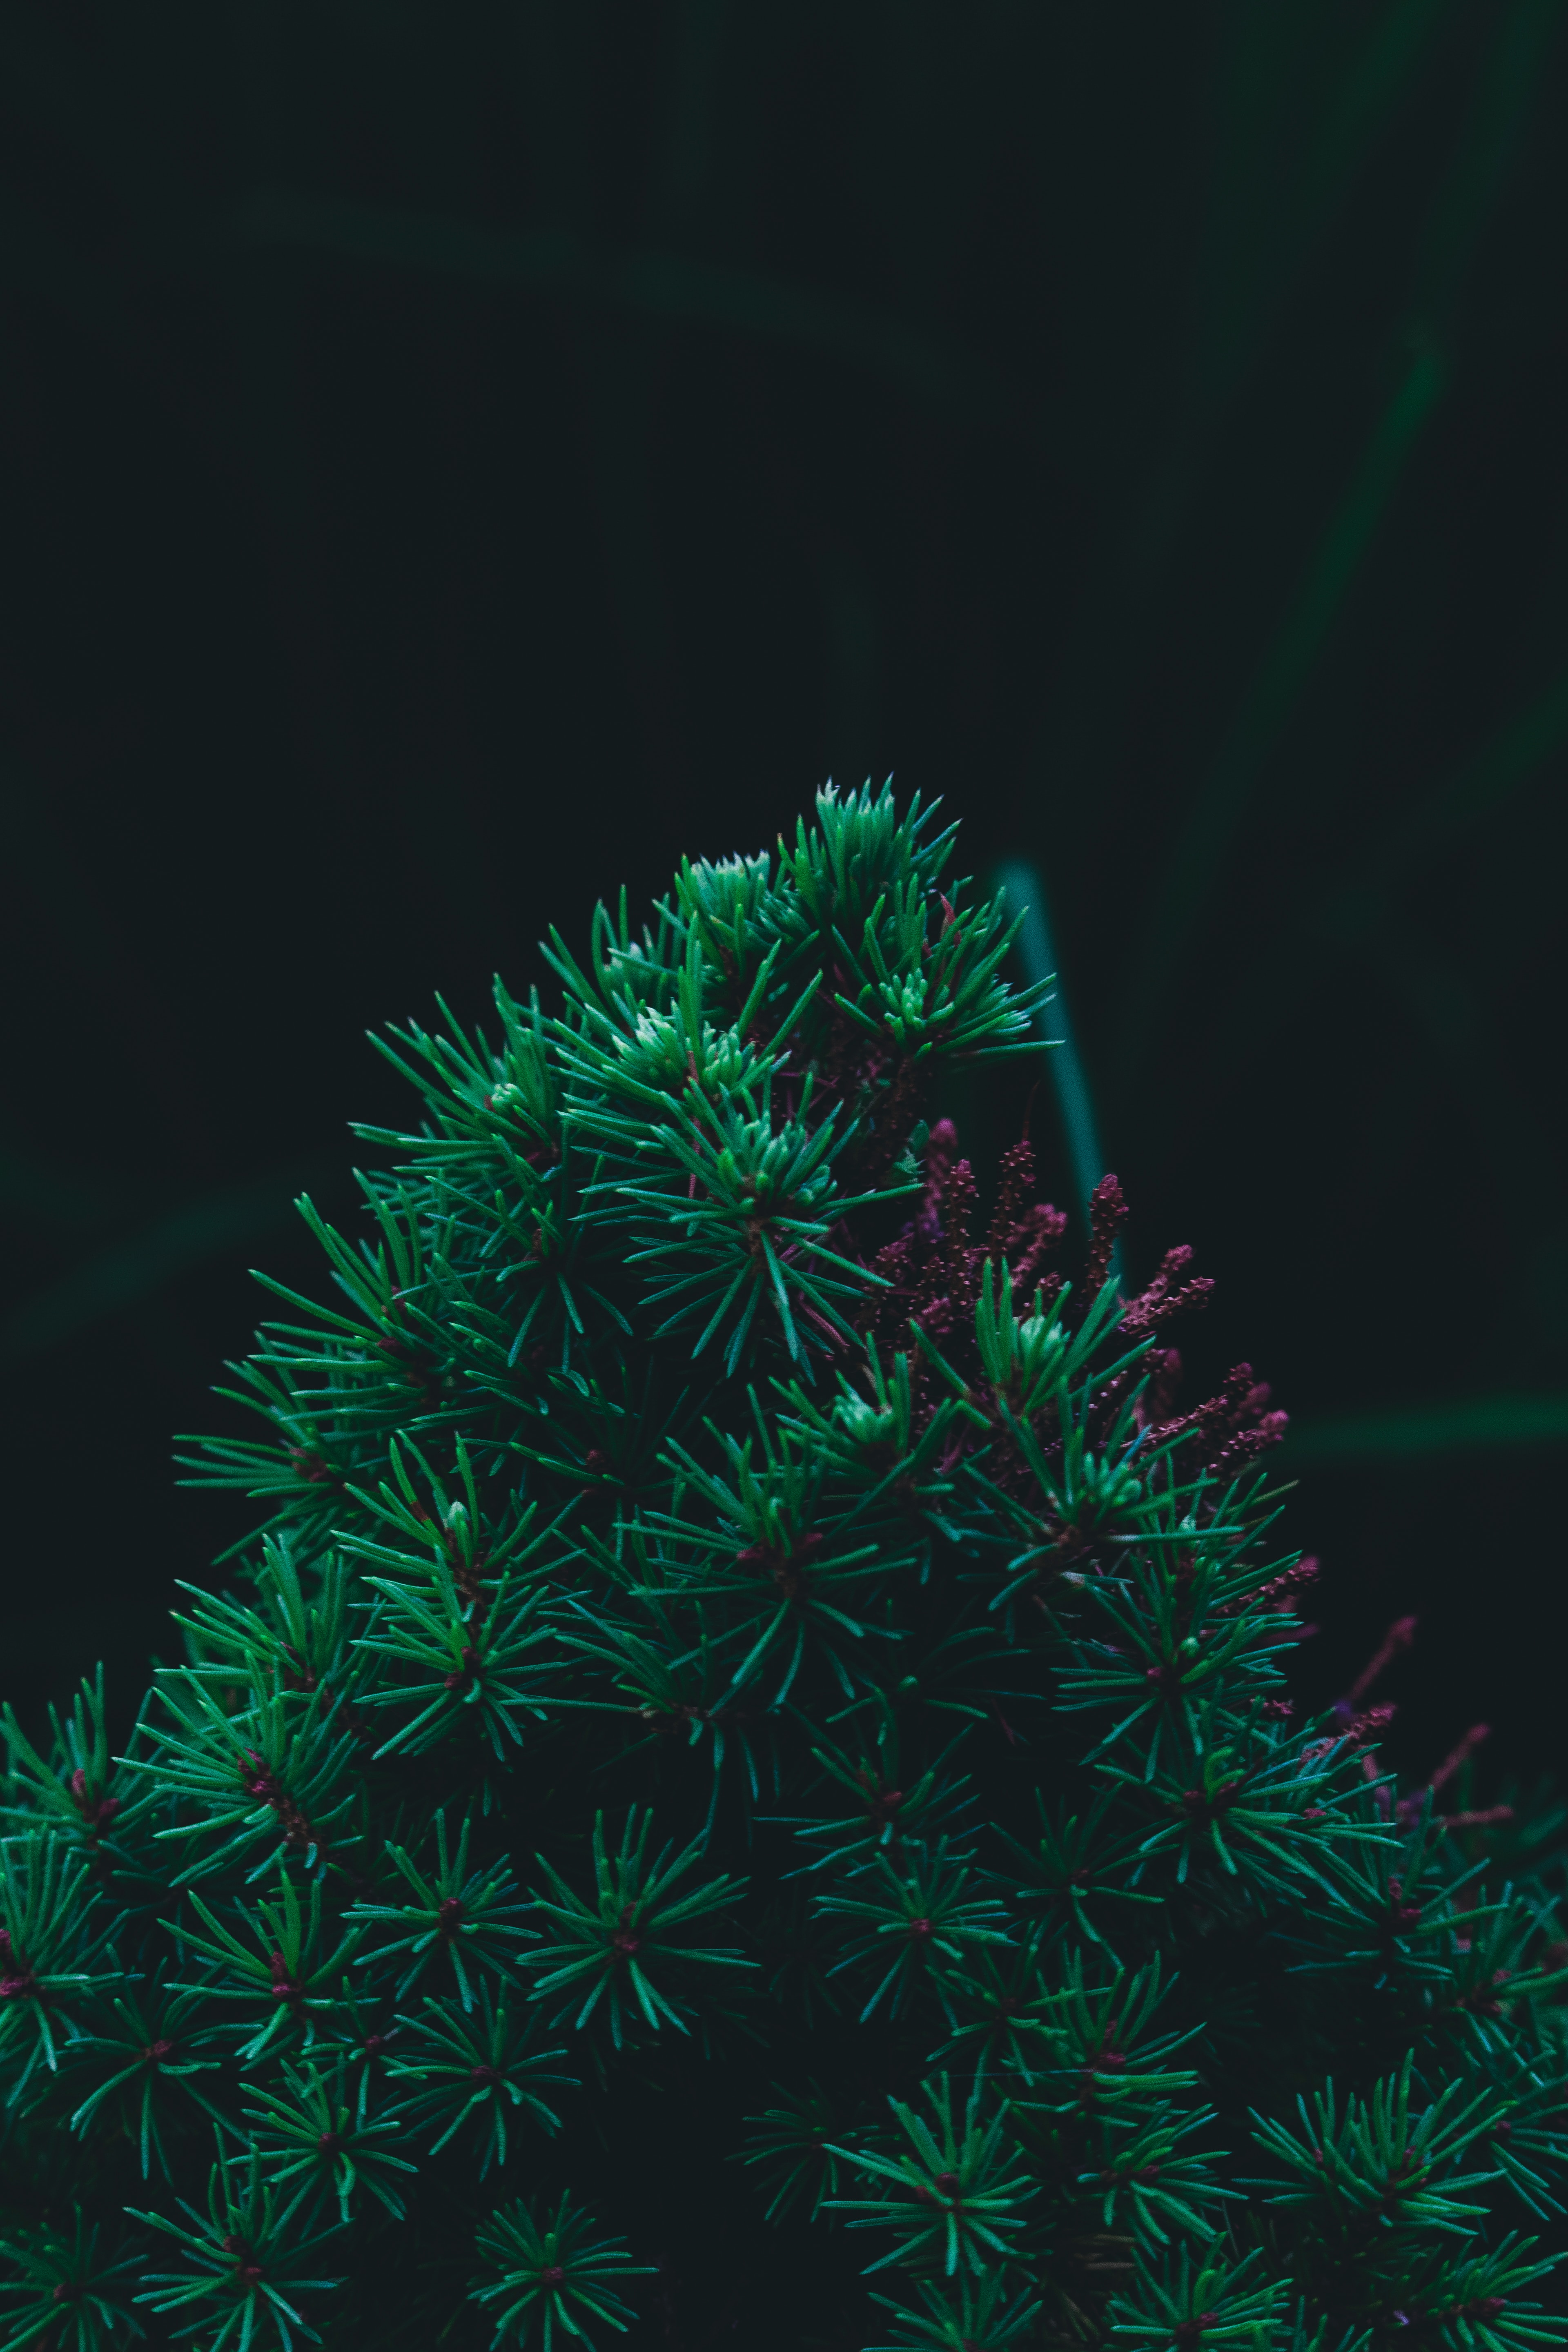 142813 download wallpaper Pine, Macro, Branch, Needles, Barbed, Spiny screensavers and pictures for free